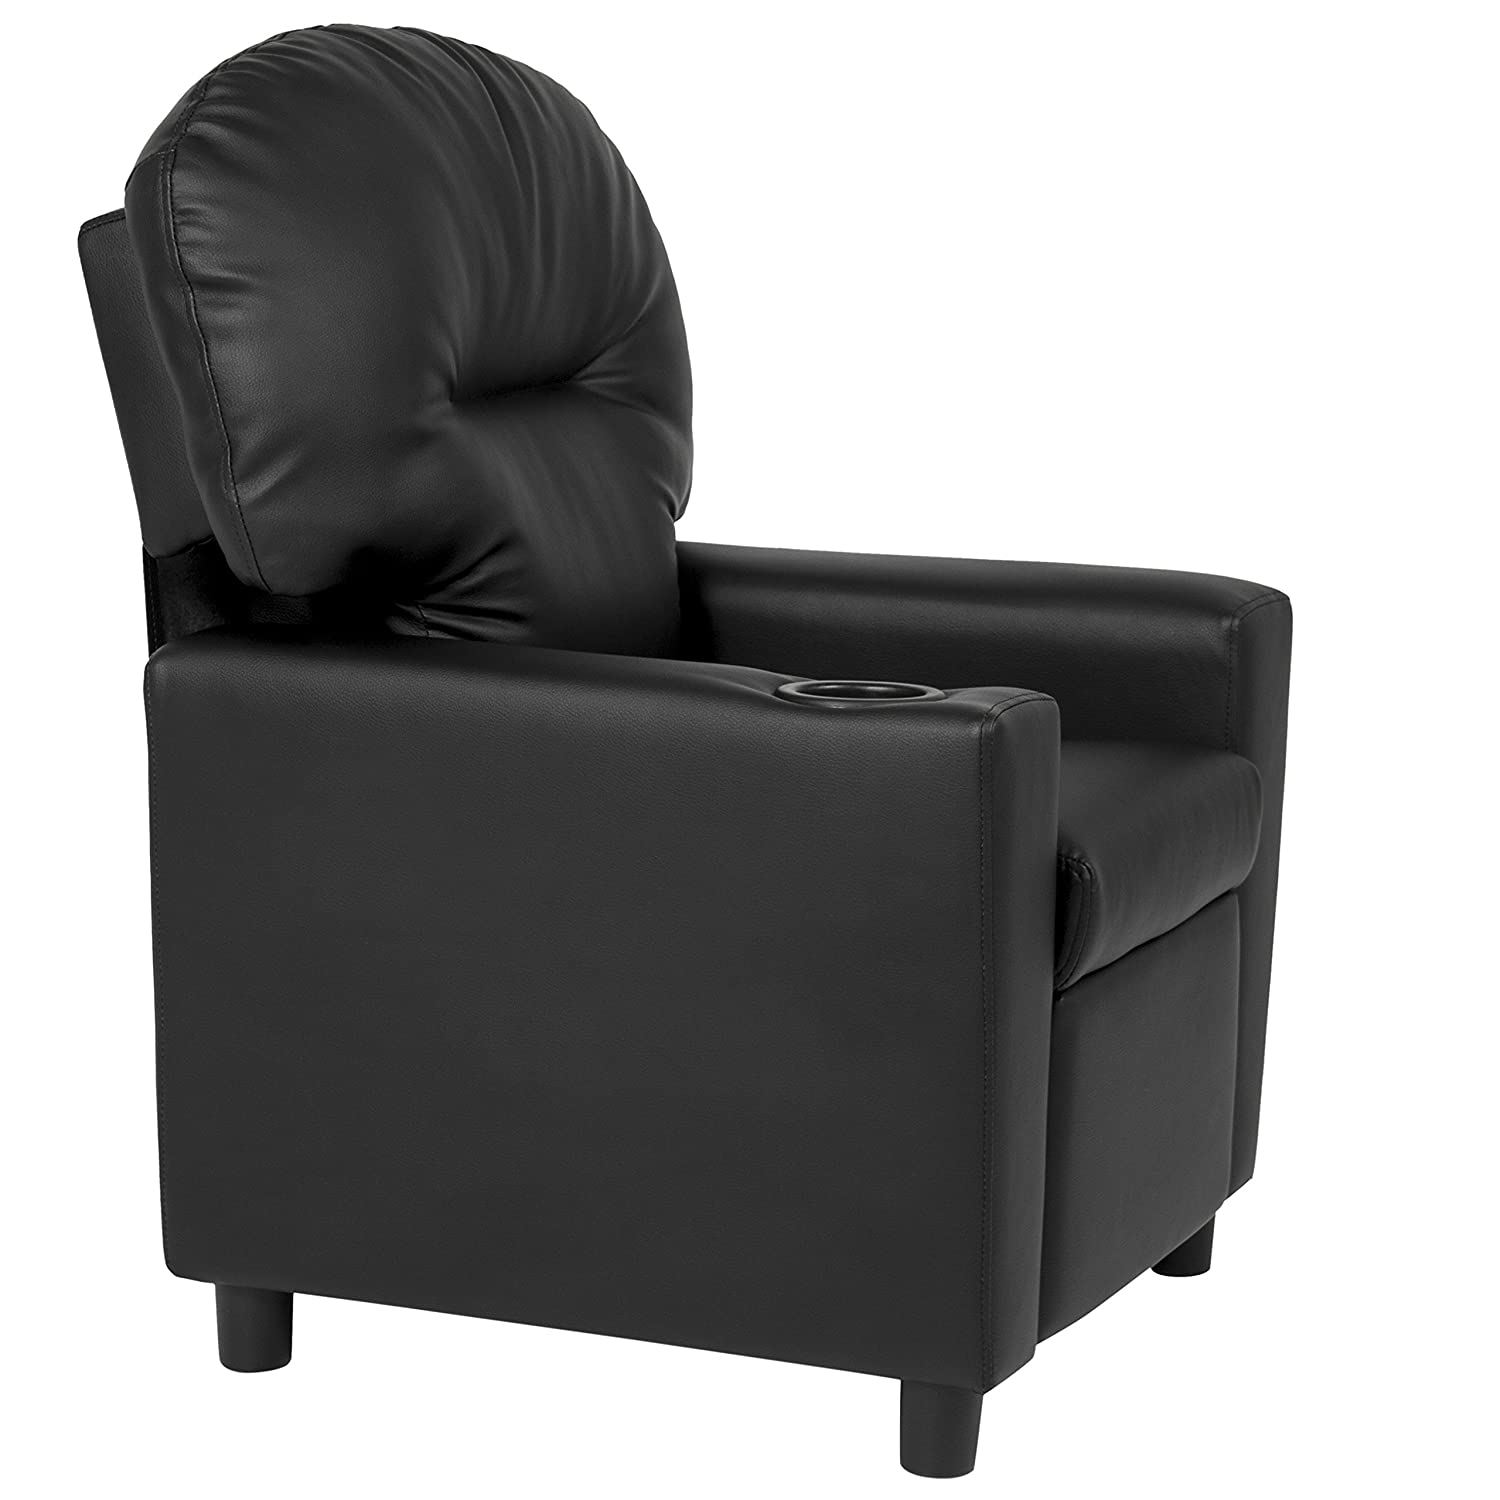 benches holders and dual recliner color sofa holder reclining cup appealing black with sectional recliners leather